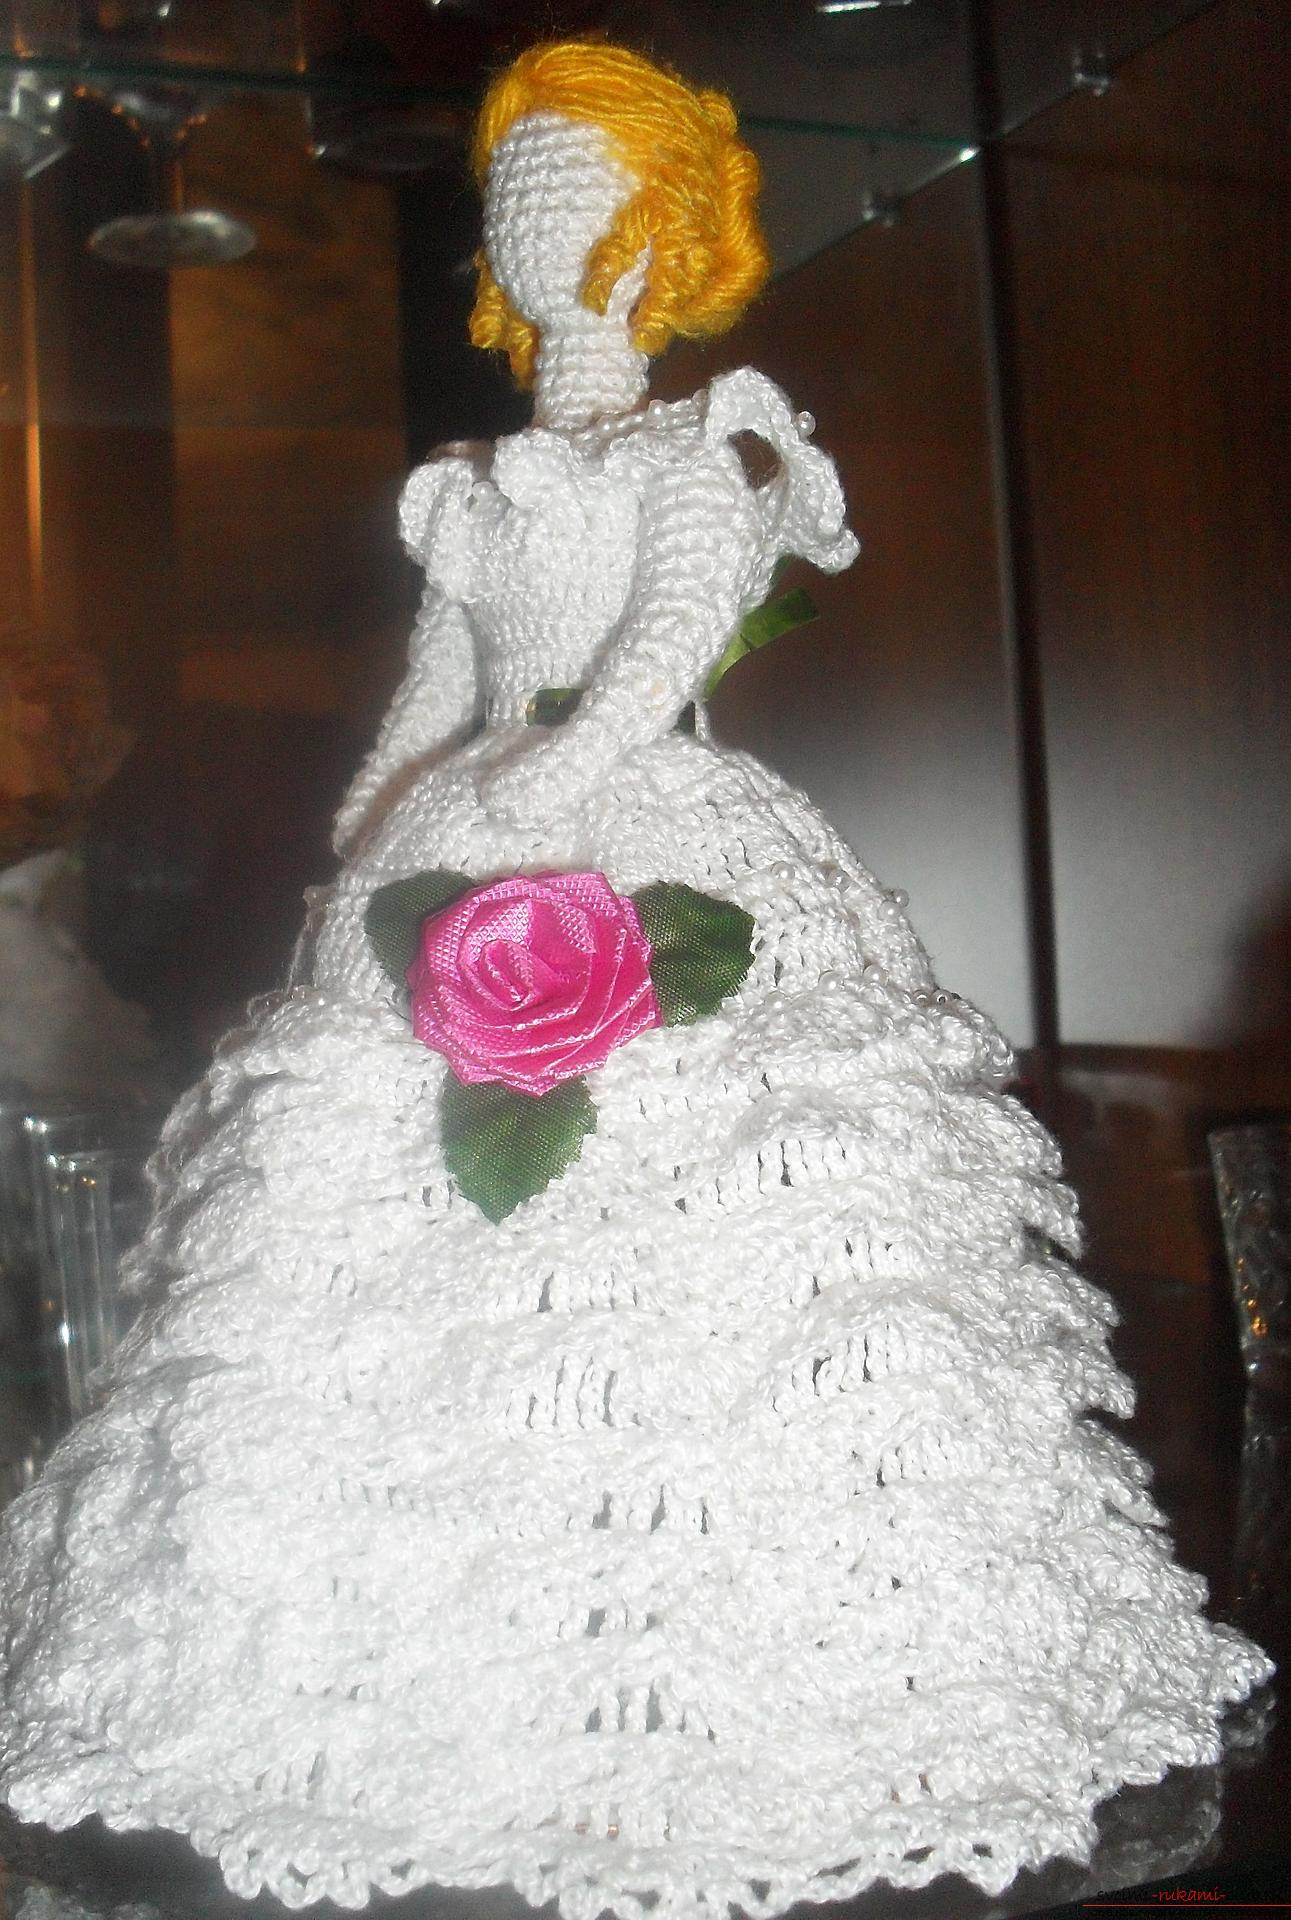 The idea for handicrafts with your own hands is a crocheted bride doll. Photo # 2